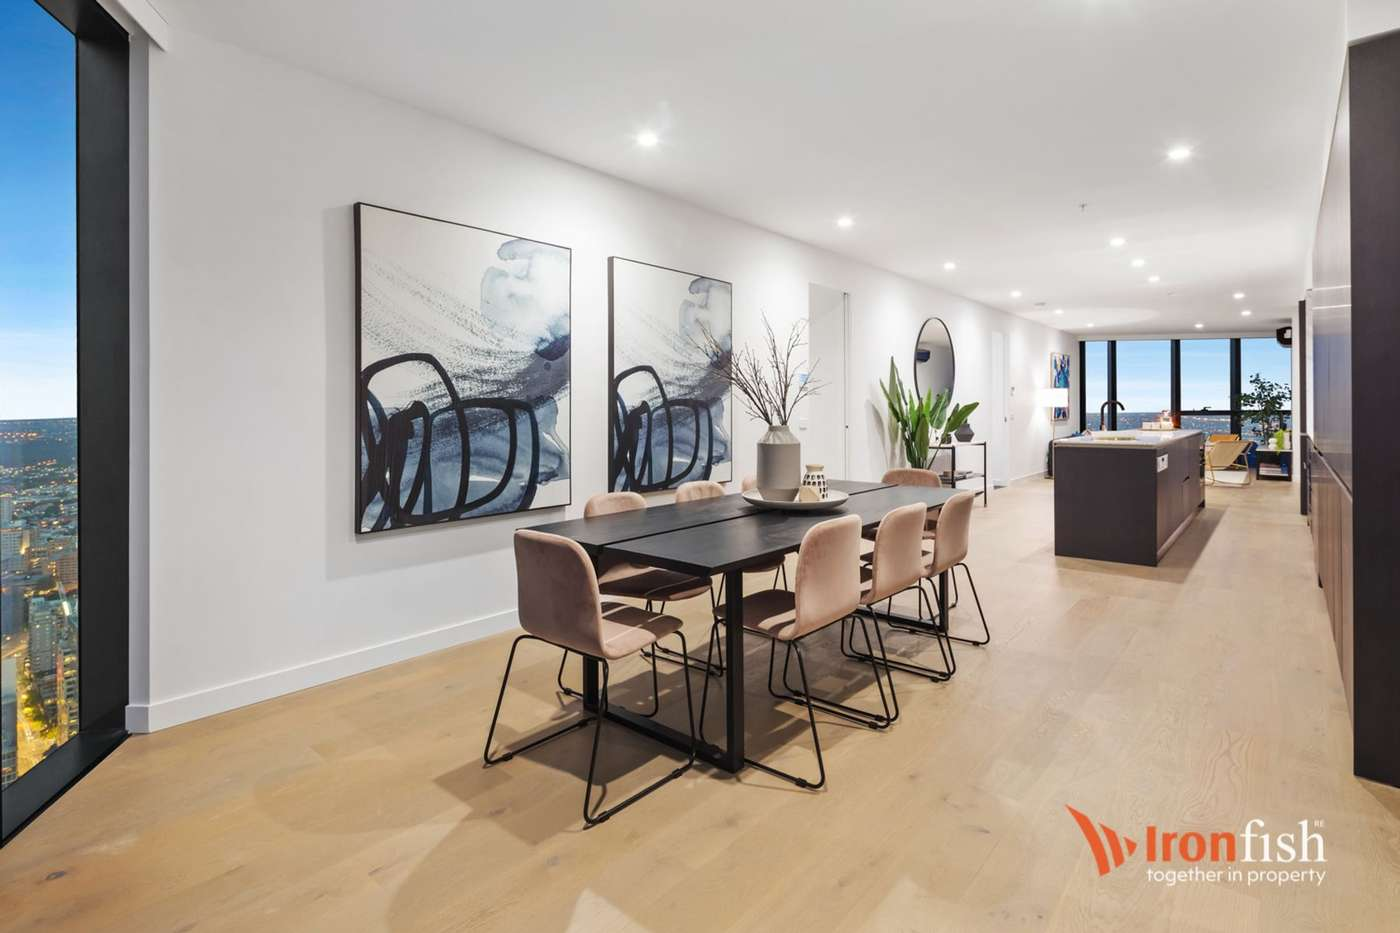 Main view of Homely apartment listing, 7106/224 La Trobe Street, Melbourne, VIC 3000